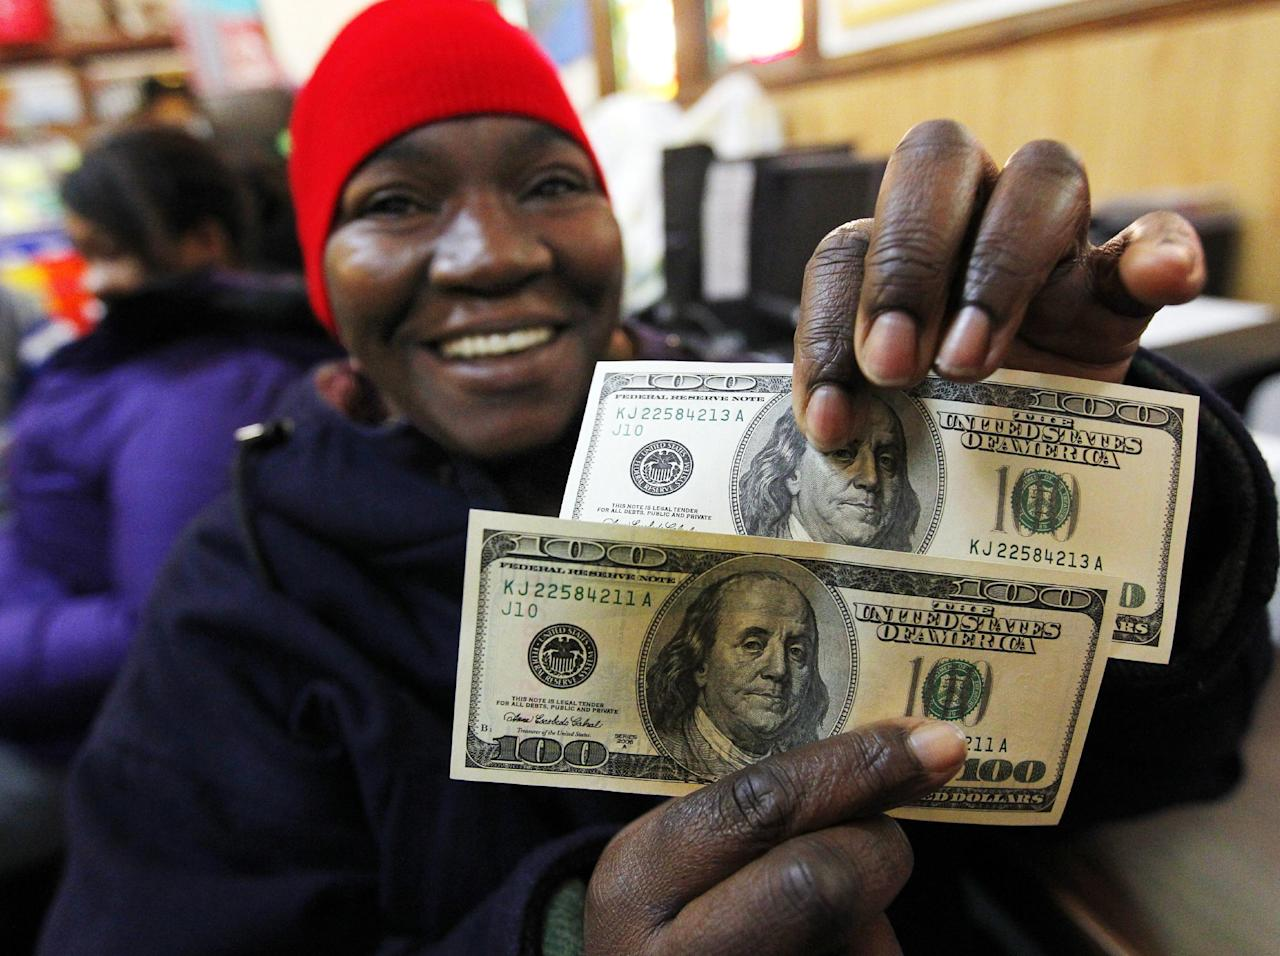 Charlotte Muhammad holds up two $100 dollar bills she got from Secret Santa, at St. Joseph's Social Service Center in Elizabeth, N.J., Thursday, Nov. 29, 2012. The wealthy philanthropist from Kansas City, Mo. known as Secret Santa distributed $100 dollar bills to needy people at St. Joseph's and other locations in Elizabeth. (AP Photo/Rich Schultz)